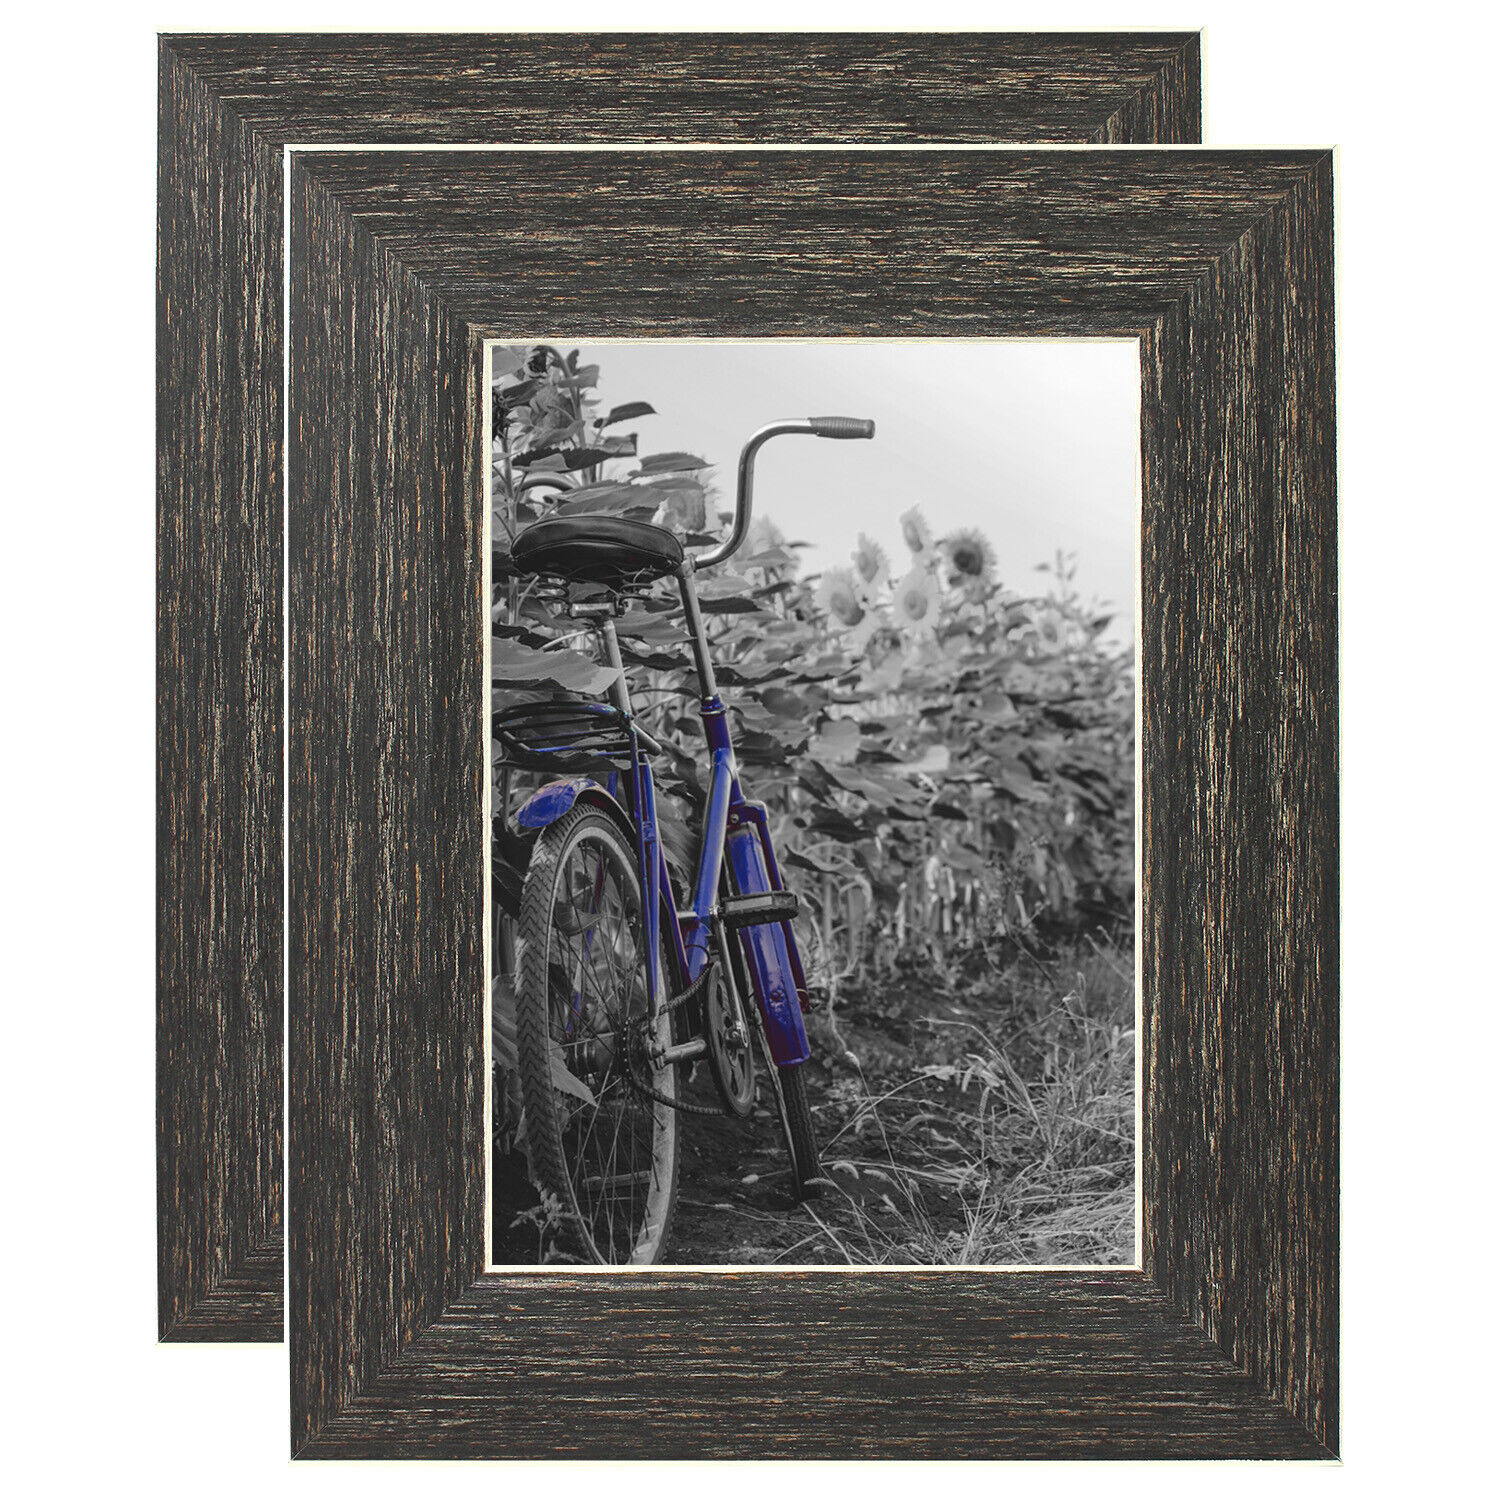 Americanflat 2 Pack - 5x7 Rustic Style Picture Frames - Buil